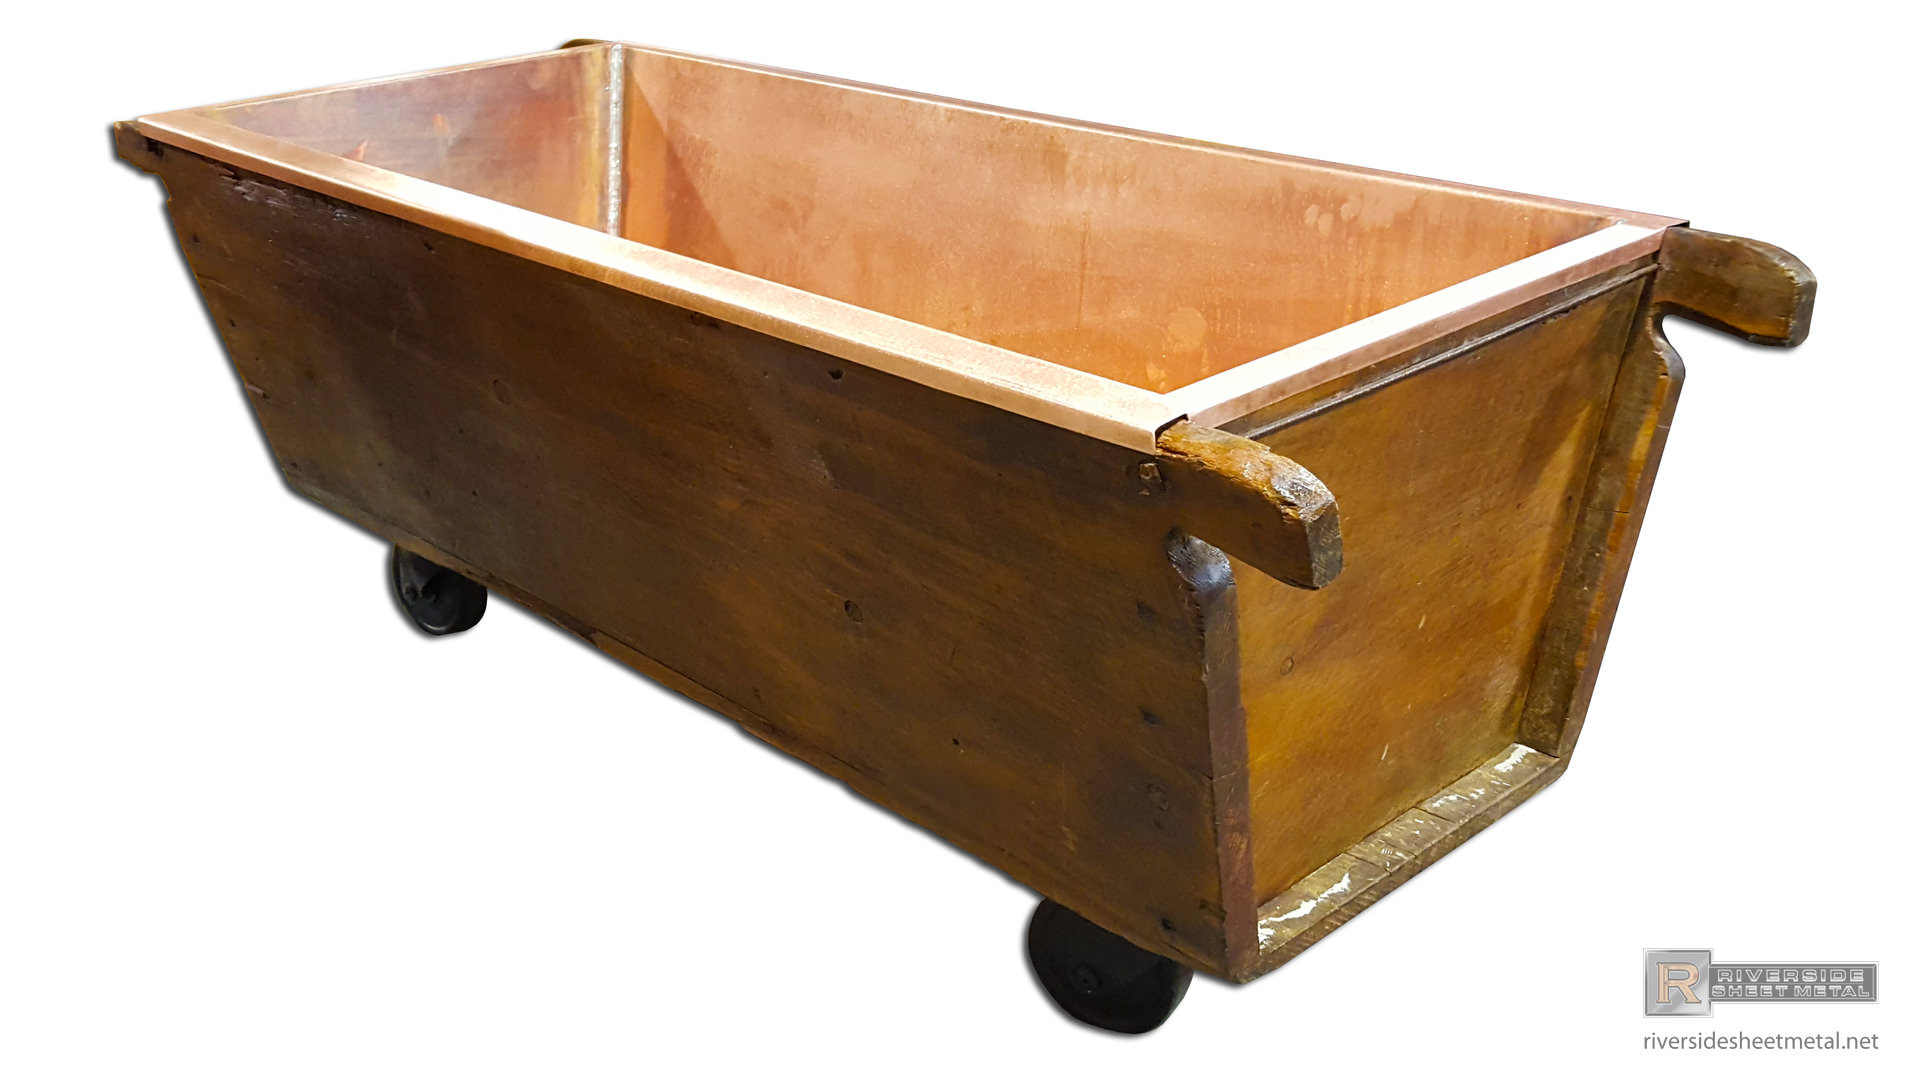 Rustic Copper Sink And Bathtub Custom Made To Order